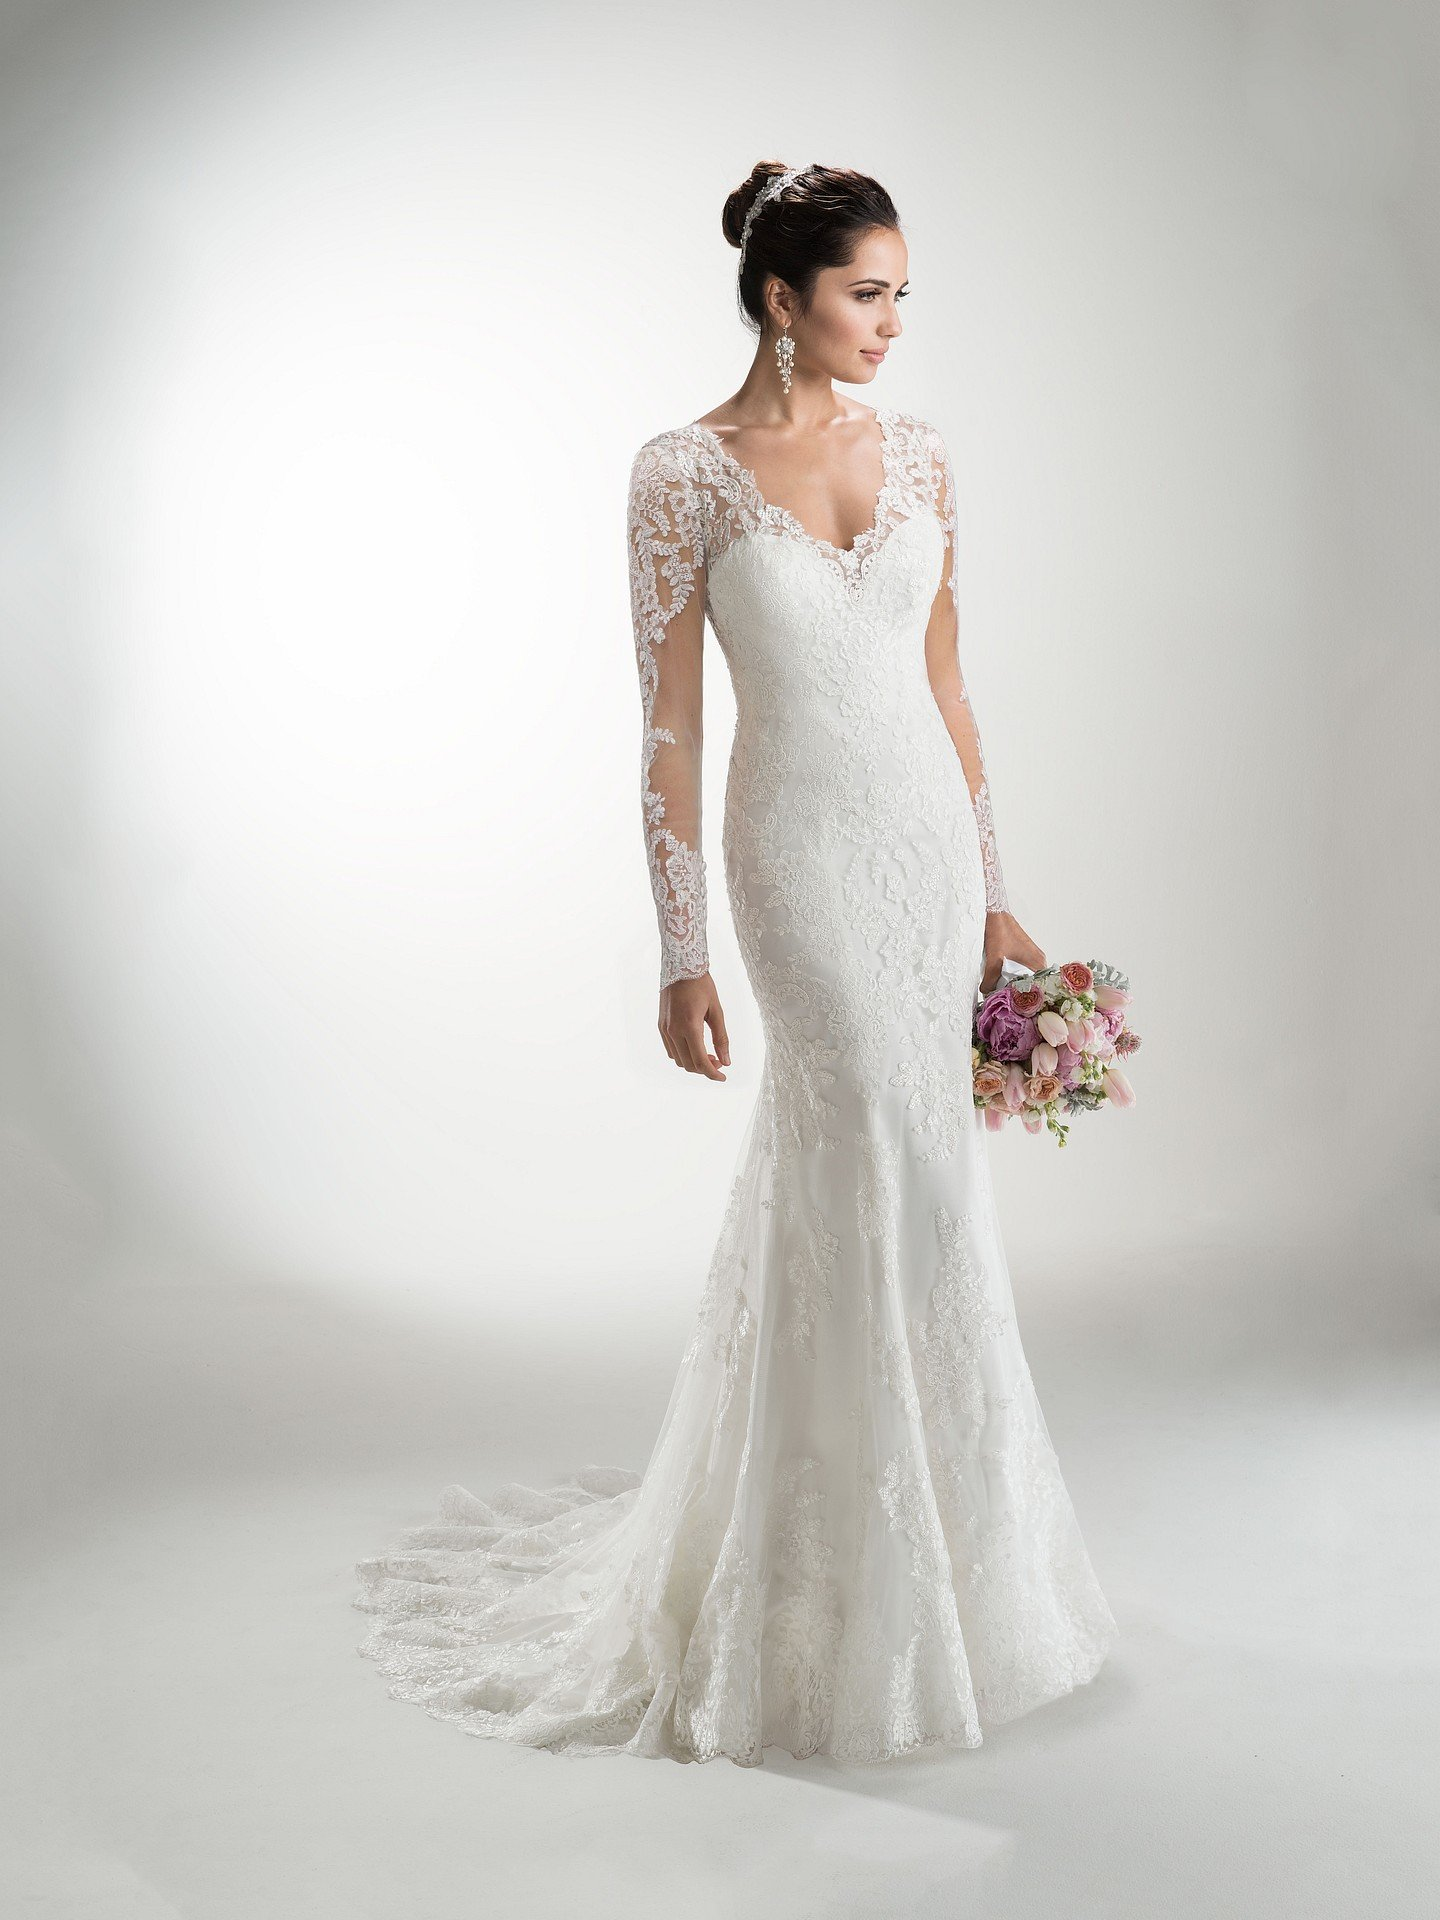 Favorite Sleeved Wedding dresses - Classic romantic gown with sleeves Melanie Marie by Maggie Sottero